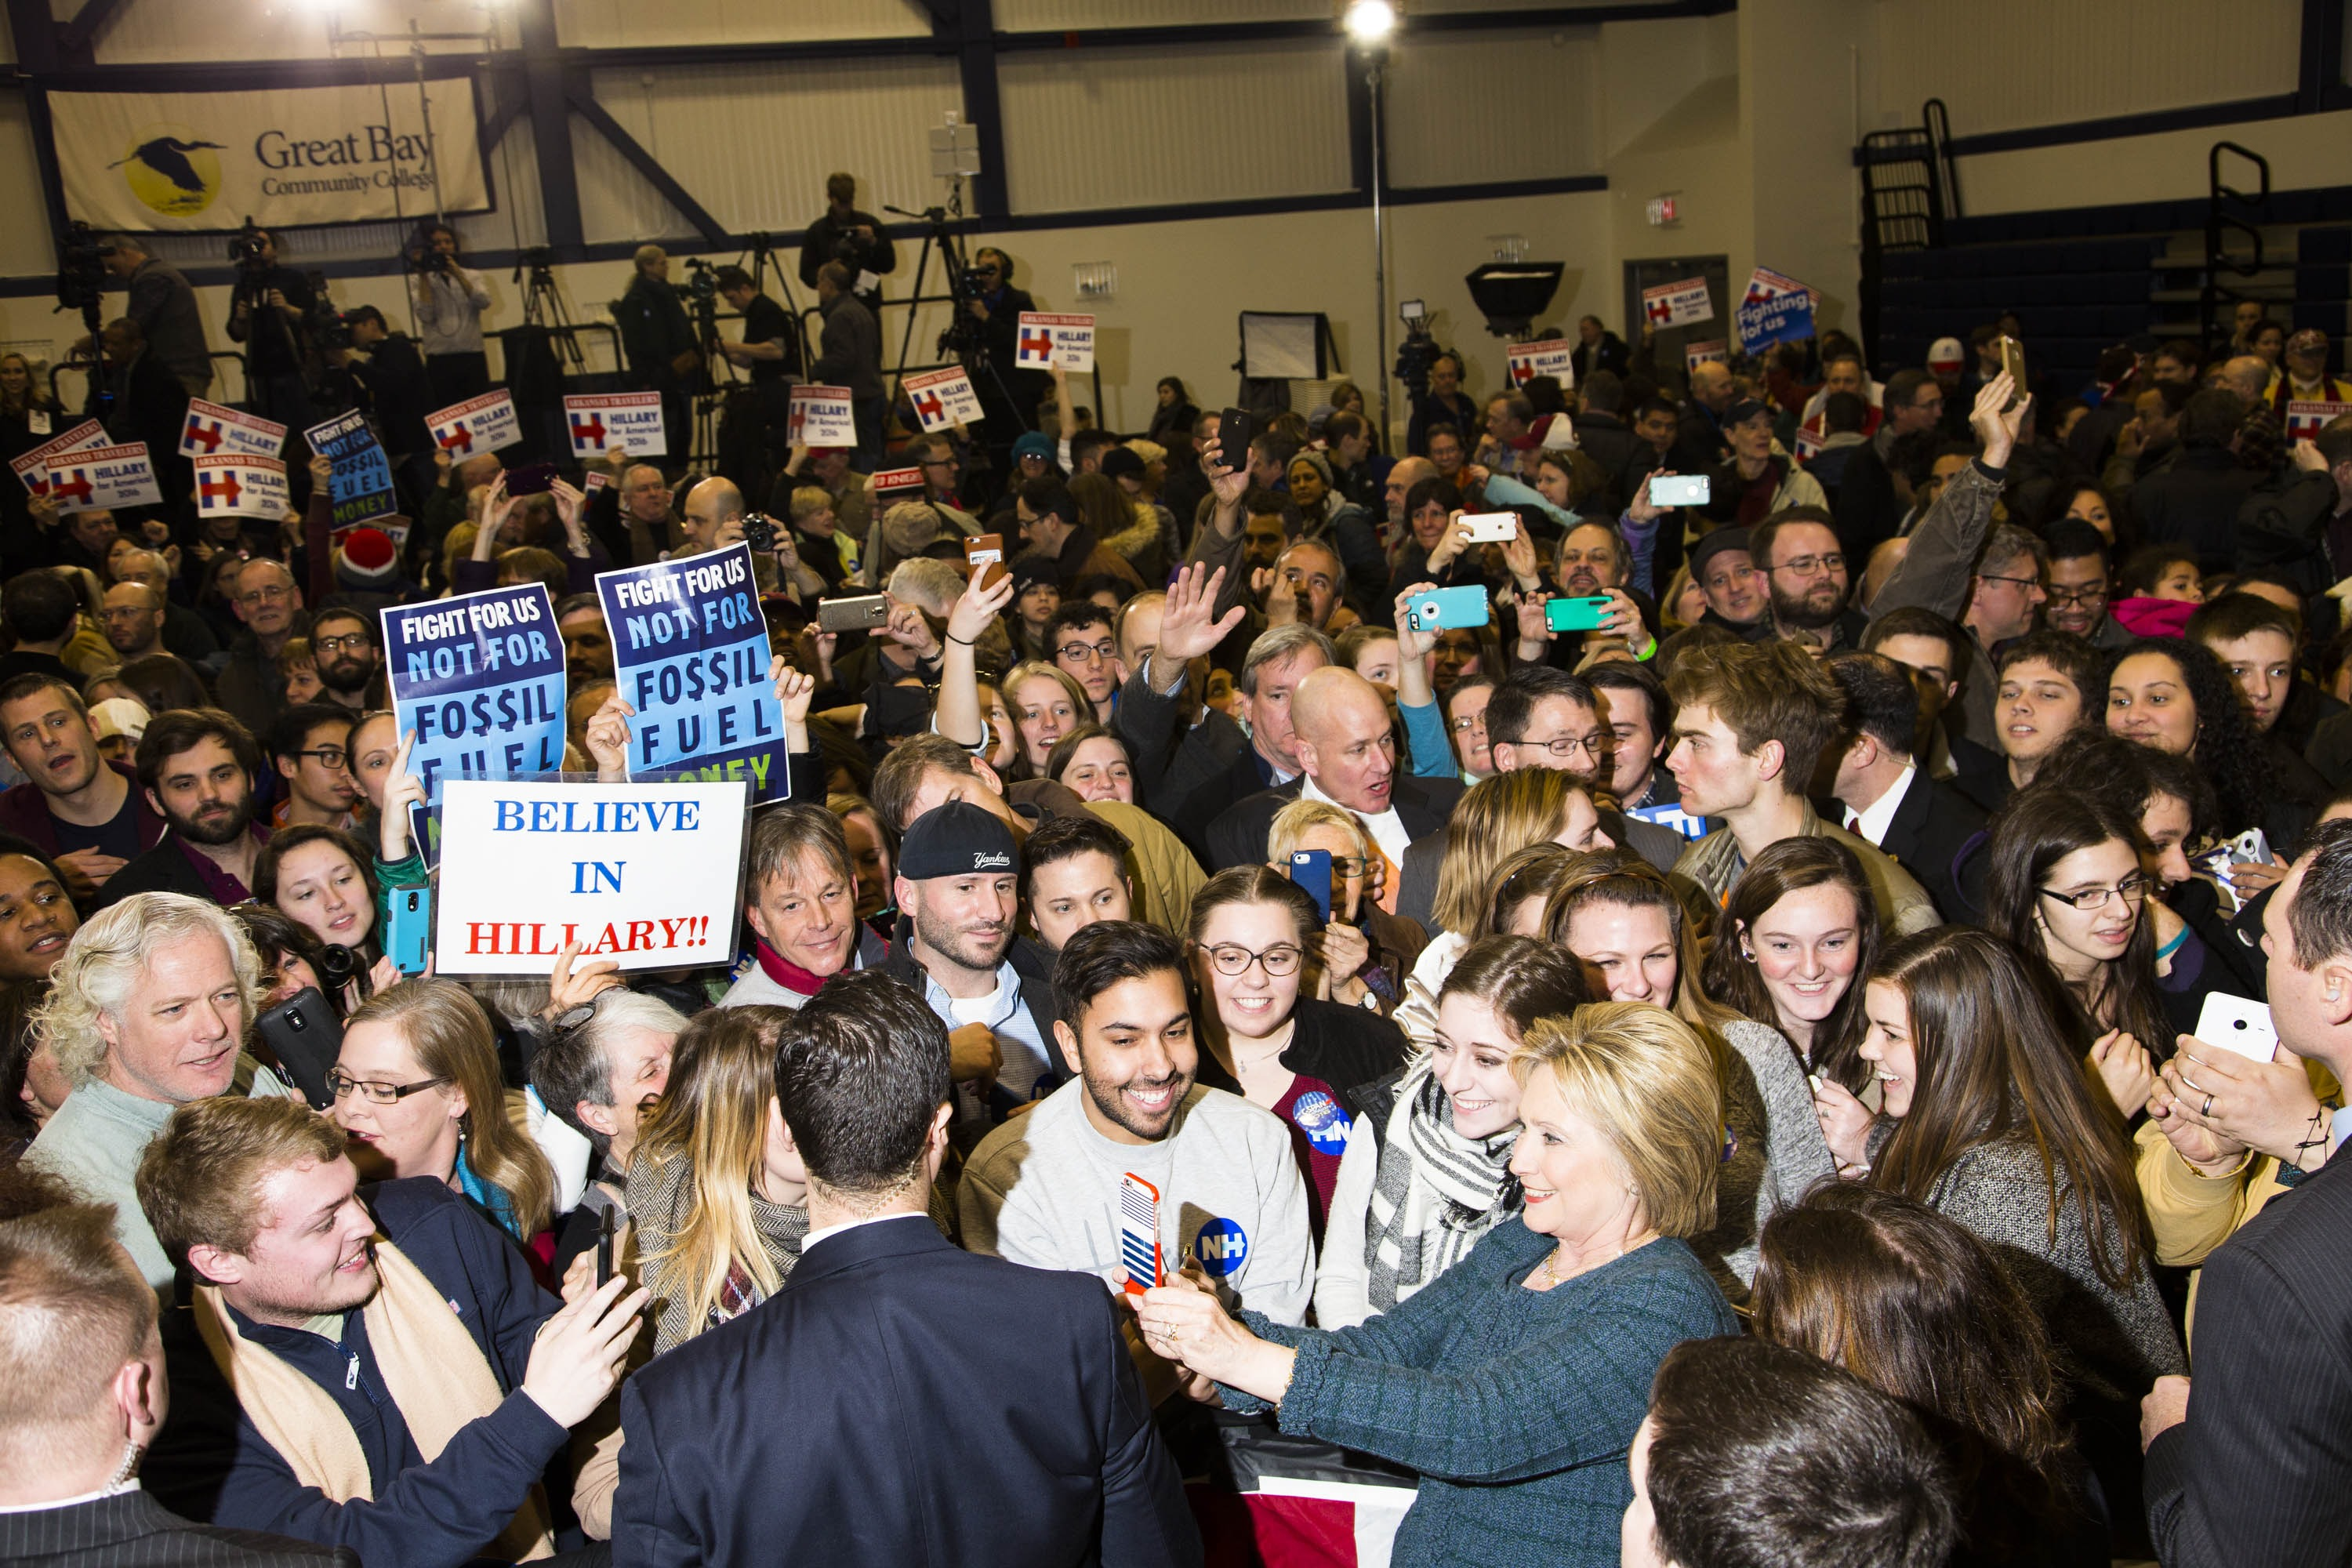 Democratic presidential candidate, former Secretary of State Hillary Clinton takes a selfie with supporters during a campaign event at Great Bay Community College on Saturday, Feb. 6, 2016, in Portsmouth, N.H.